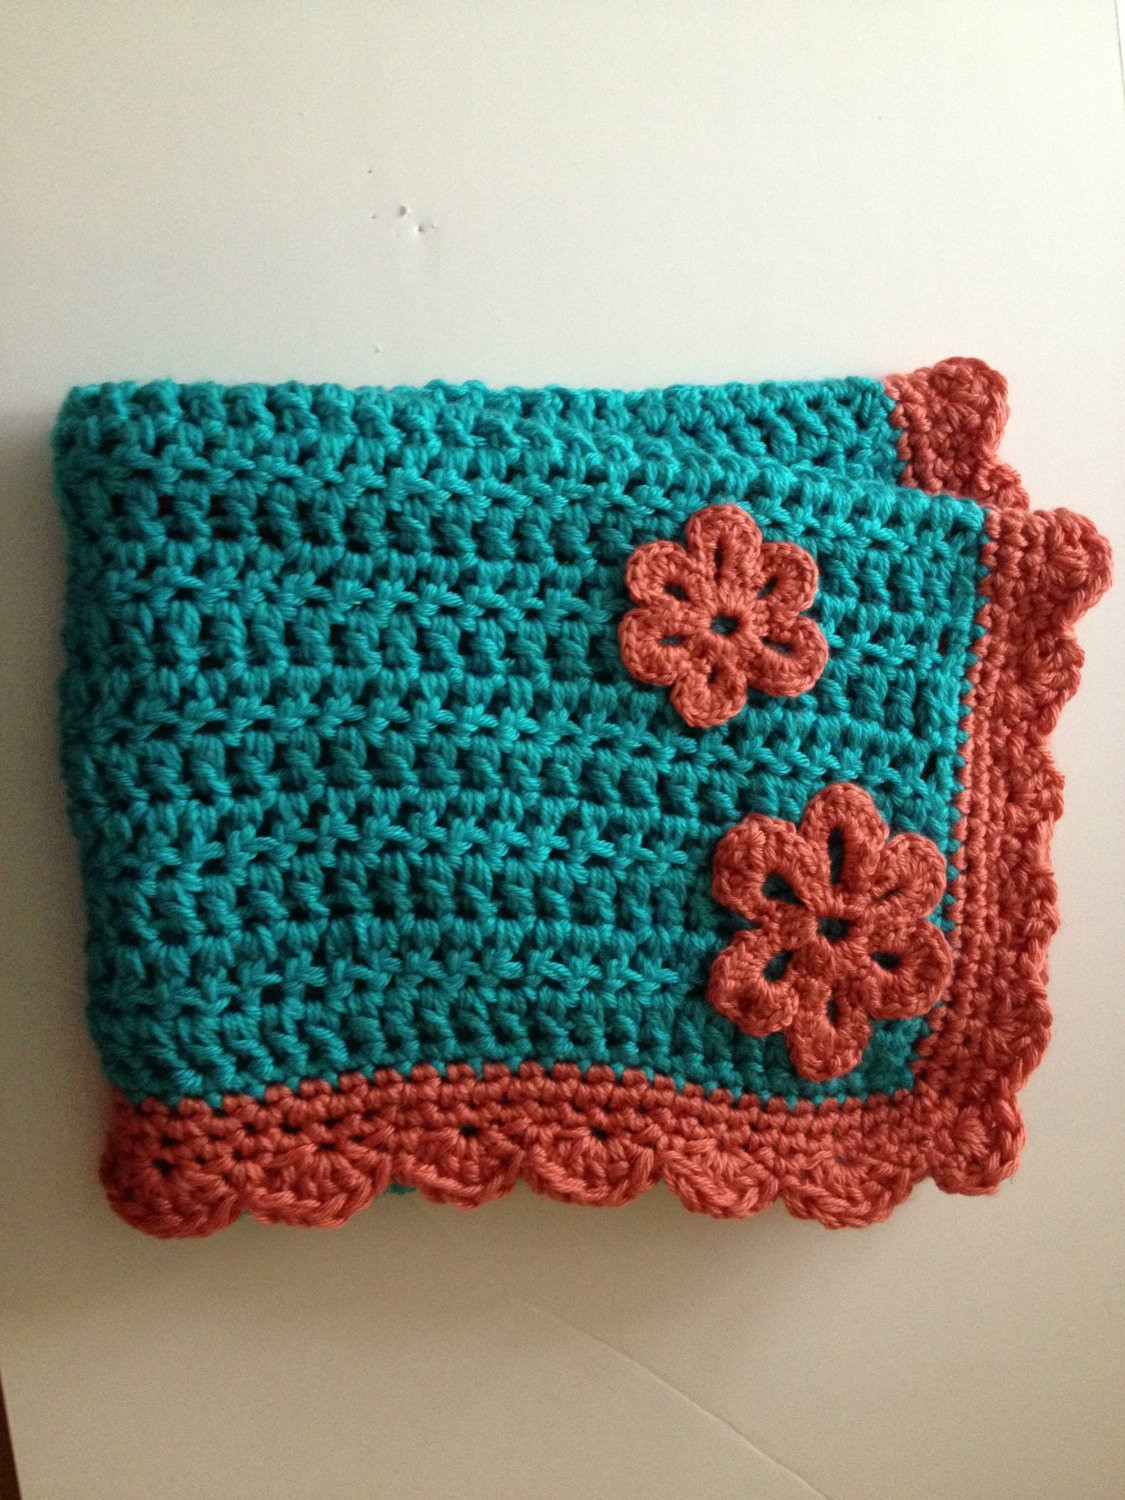 Quick and Easy Crochet Patterns Unique Crochet Pattern Quick Easy Beginner Flower by Of Fresh 47 Pictures Quick and Easy Crochet Patterns